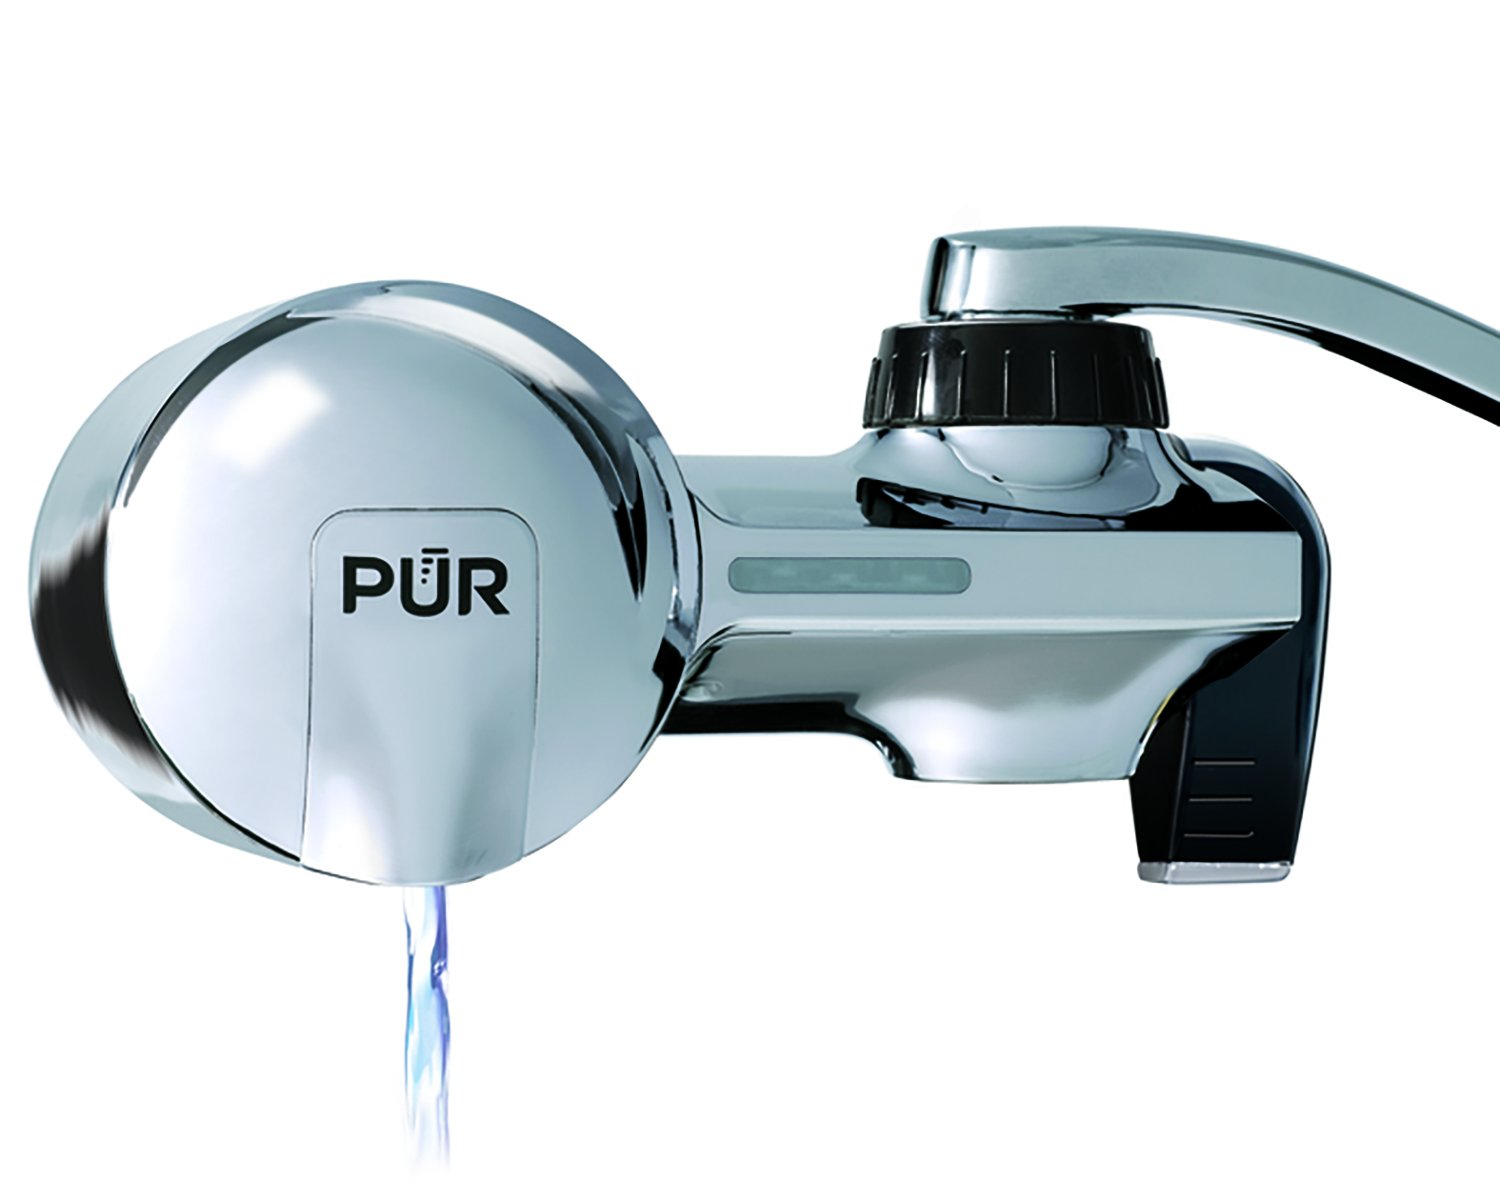 PUR Advanced Faucet Water Filter System with MineralClear Filter, Chrome, Horizontal, Indicator for Filter Status, Carbon Filter Lasts 3 Months (100 gal), Fits Standard Faucets, Easy Install, PFM400H by PUR